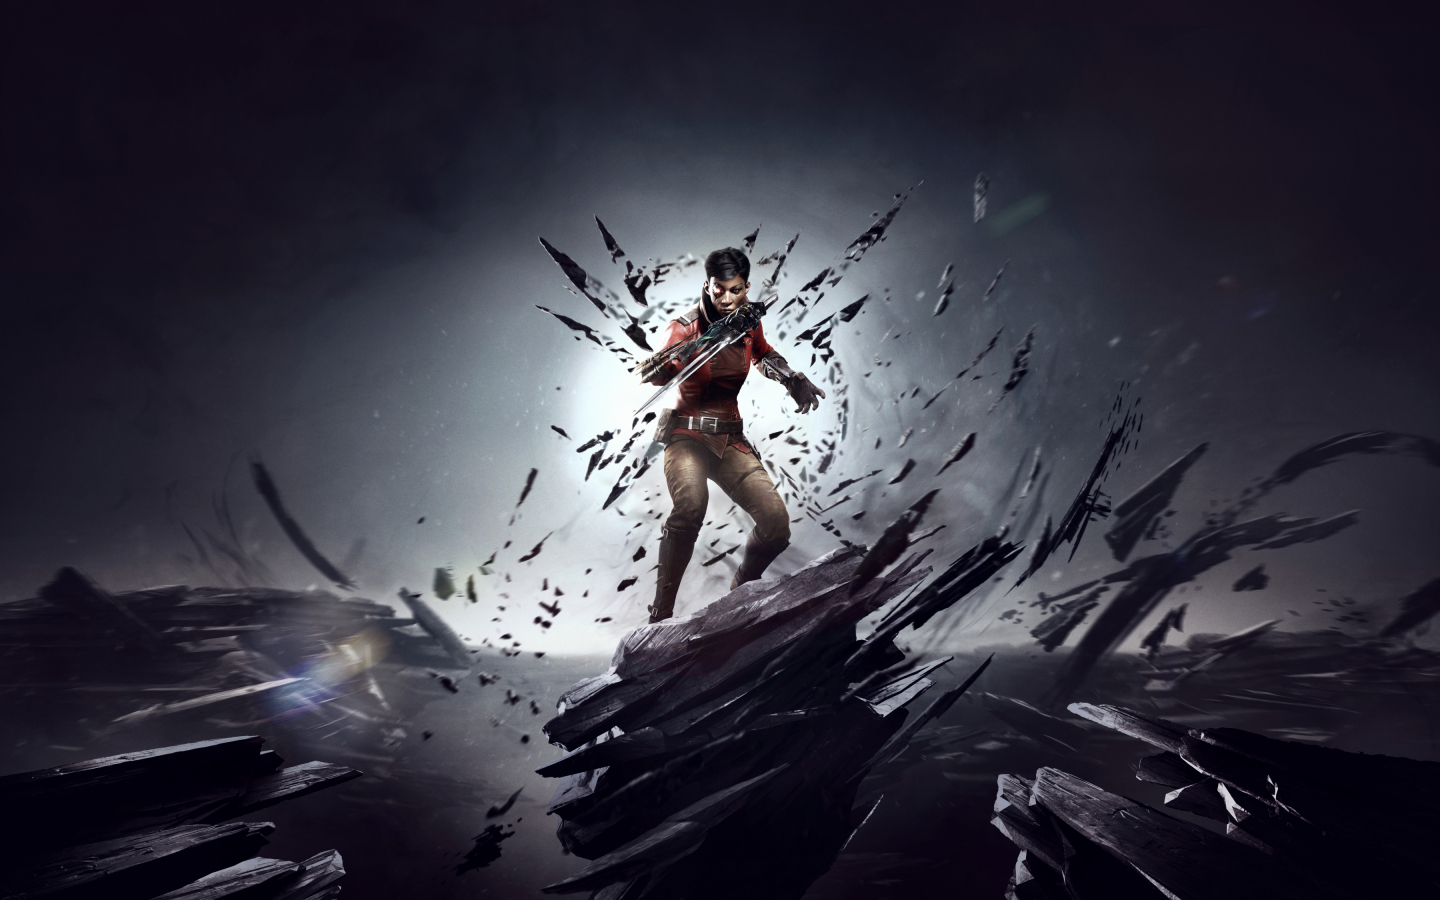 1440x900 wallpaper Dishonored: Death Of The Outsider, 2017 game, video game